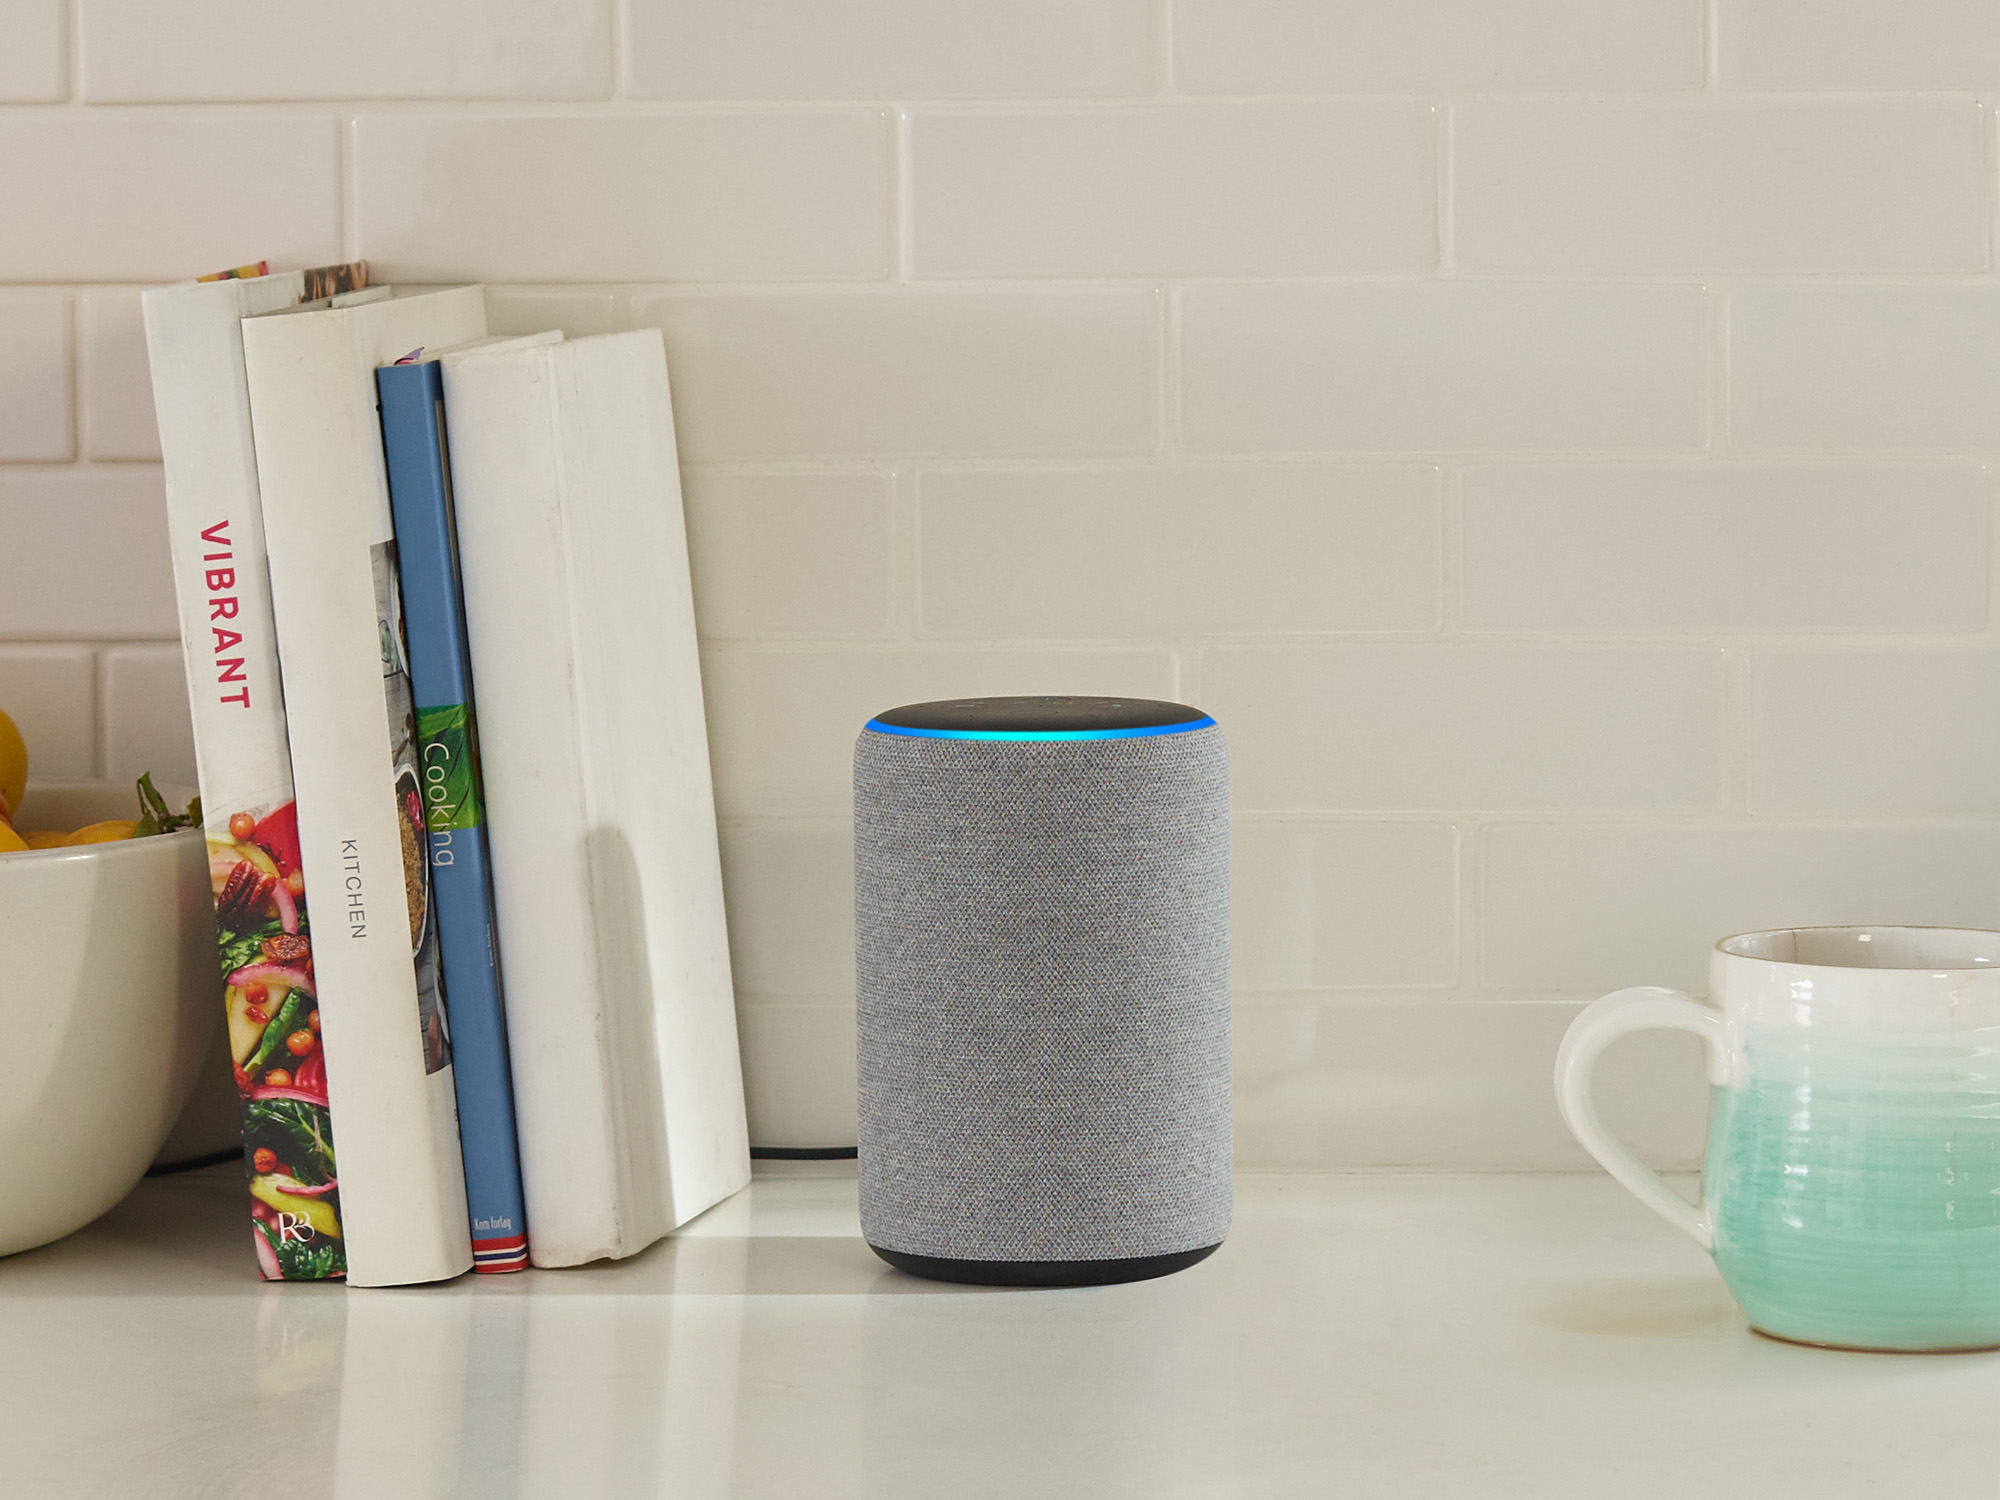 Amazon Echo Pro 2nd Gen